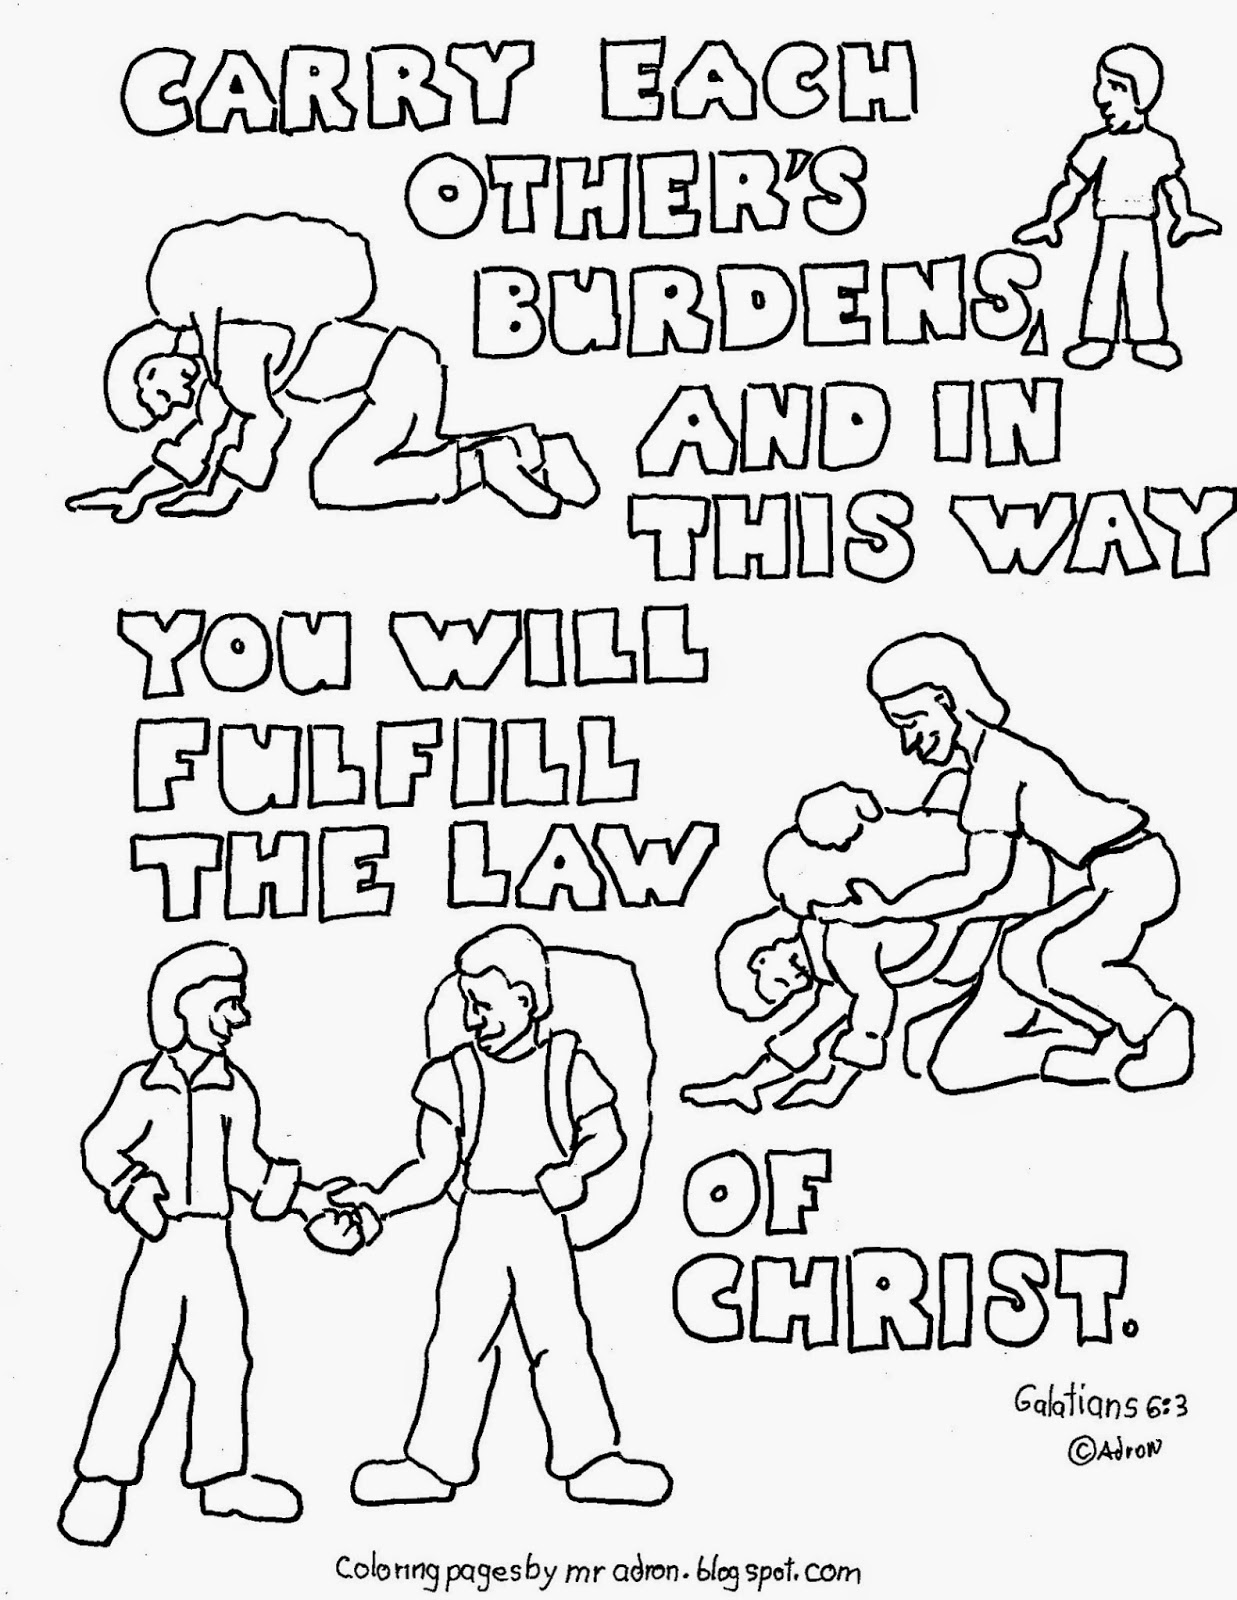 Coloring Pages For Kids By Mr Adron Carry Each Others